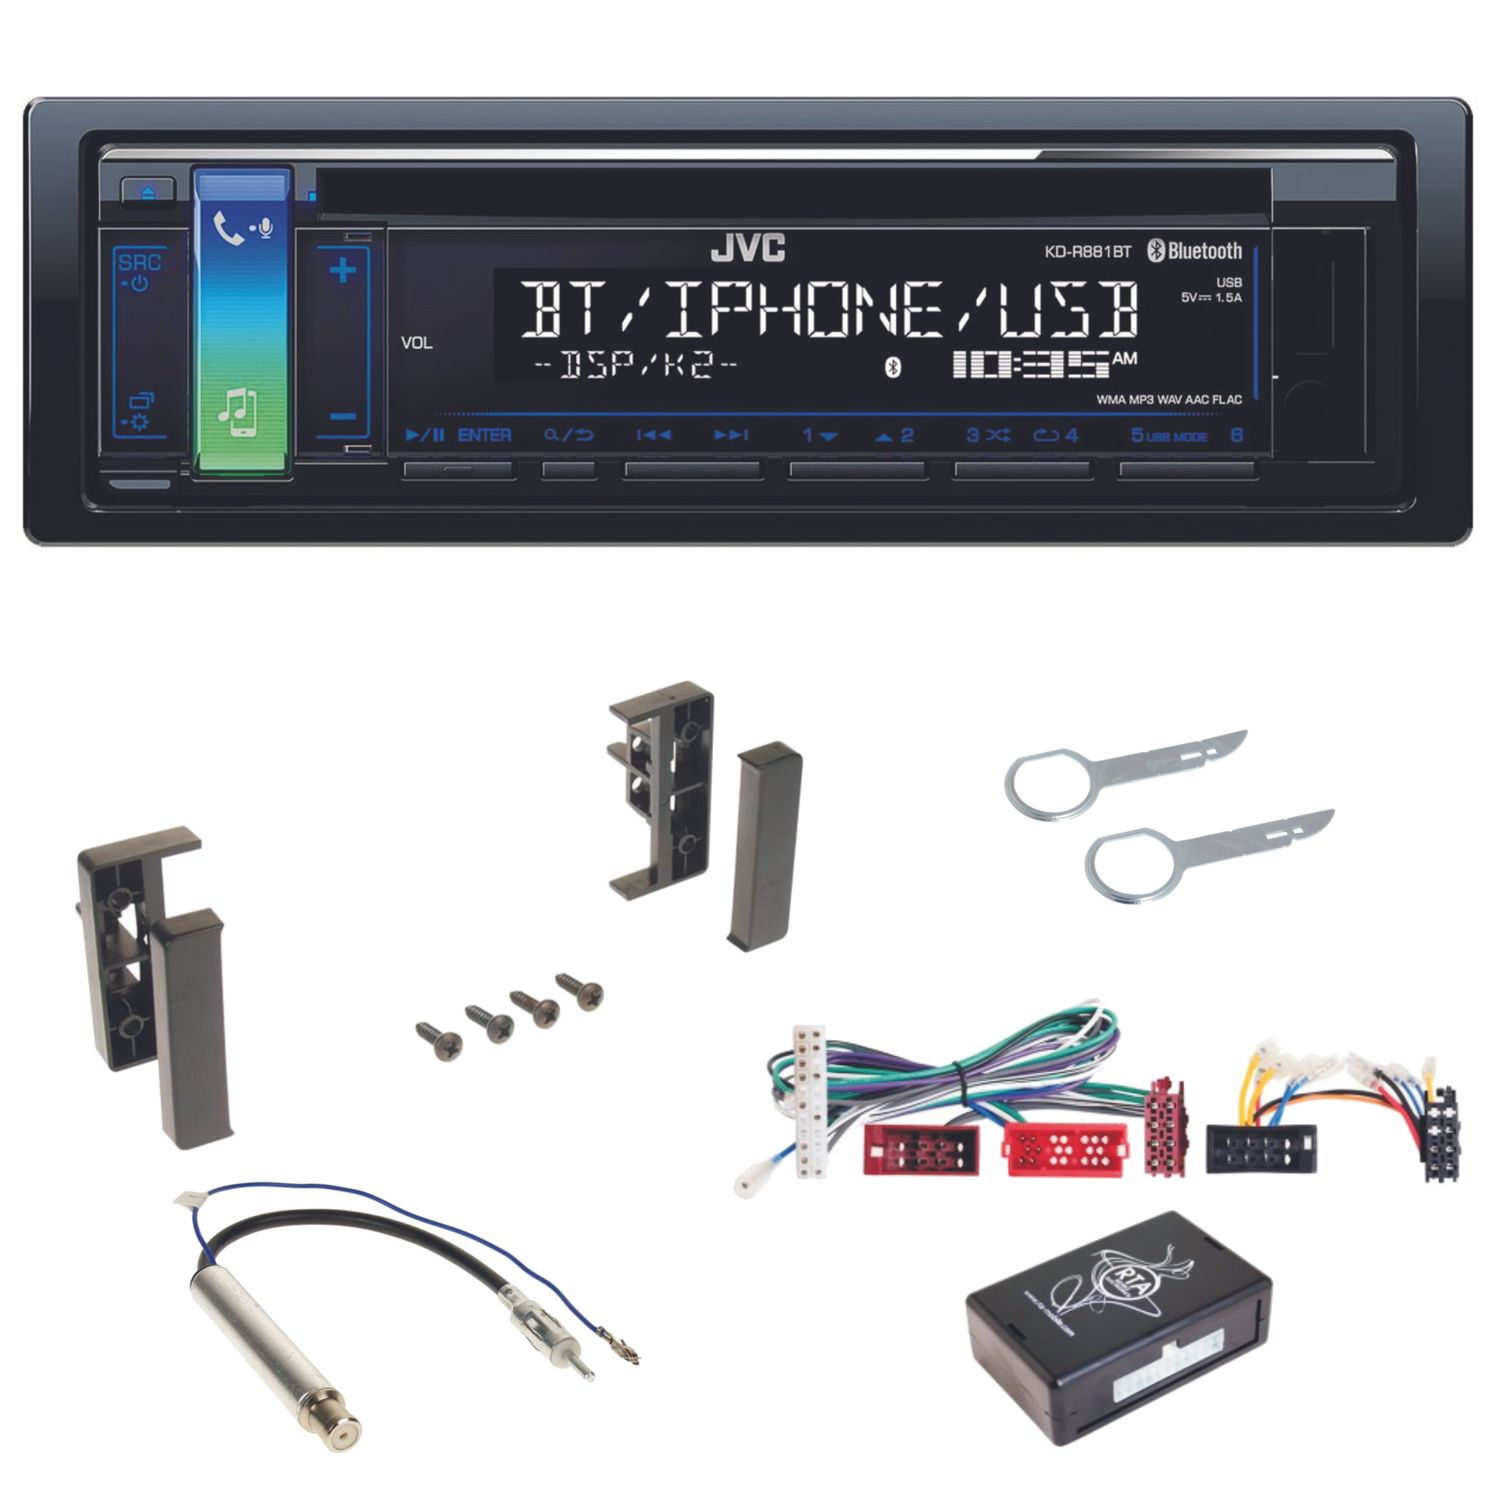 jvc kd r881bt usb autoradio mp3 bluetooth cd aux aoa 2 0. Black Bedroom Furniture Sets. Home Design Ideas